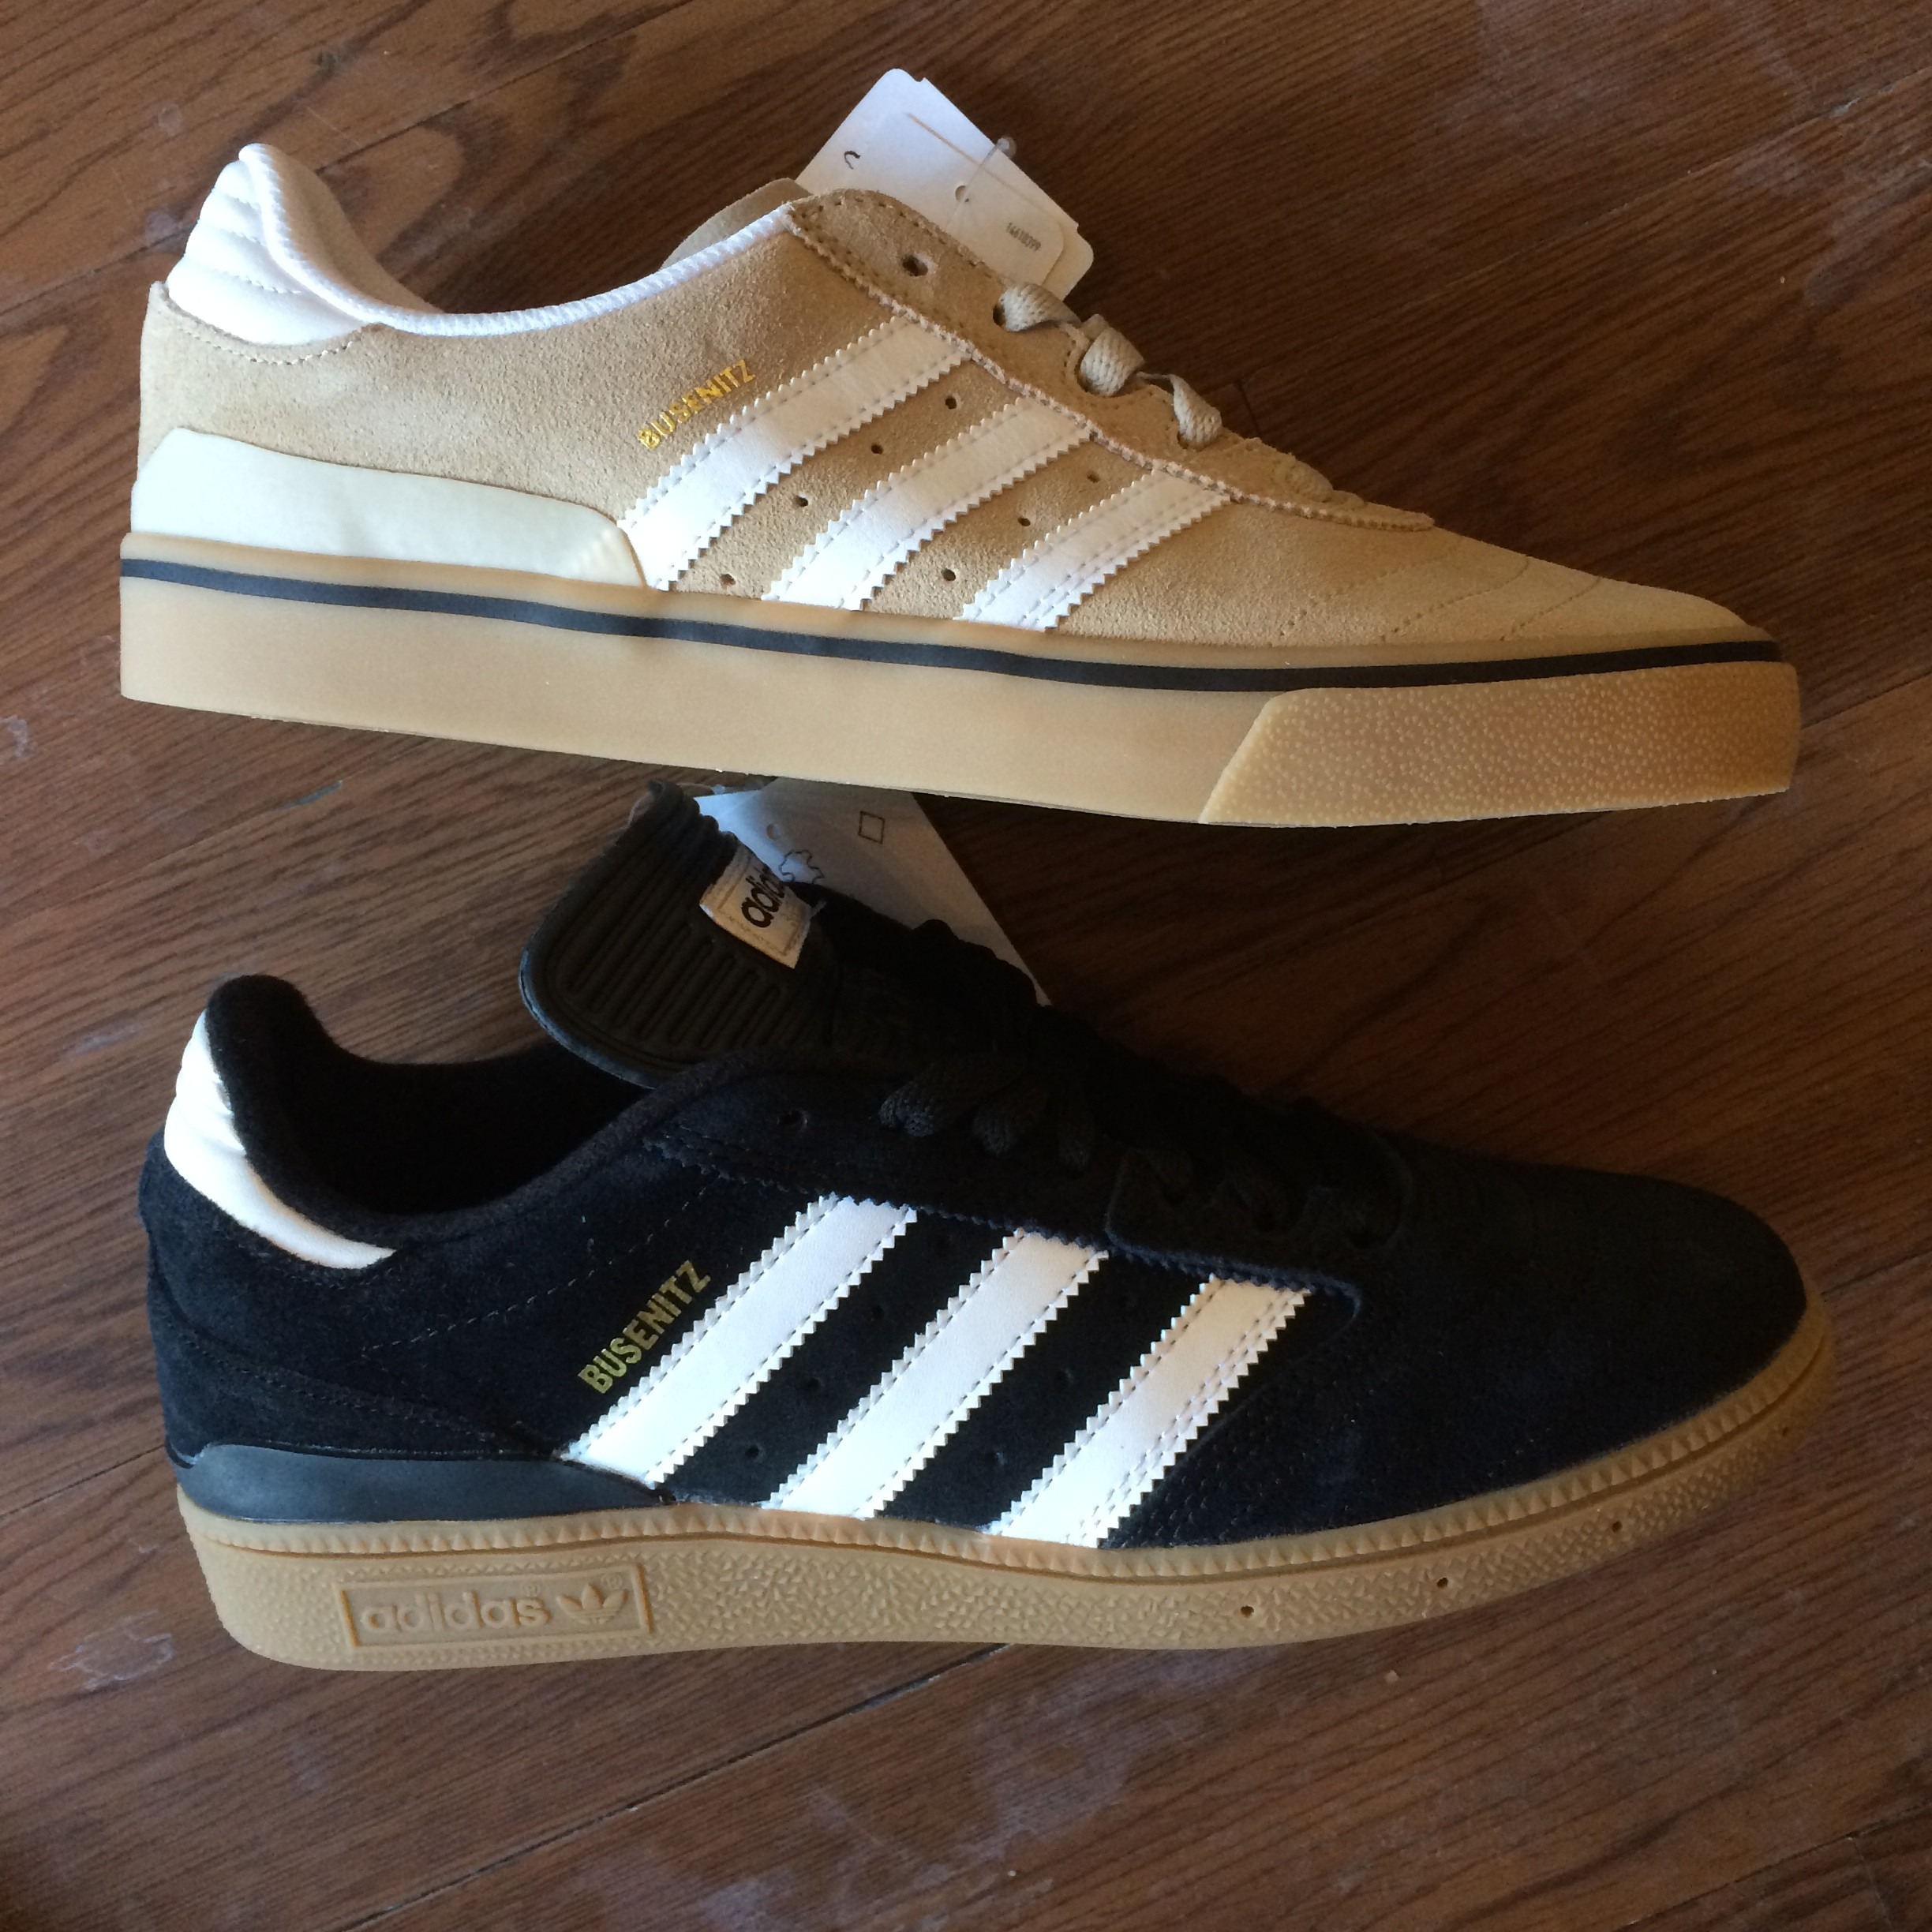 f7d3d57554c New Adidas SkateBoarding Shoes Just Came In At Our Hampden Store… Busenitz  Vulc In Tan Gum   Busenitz Pro In Black White Gum. Also Got In The Adidas  Mark ...